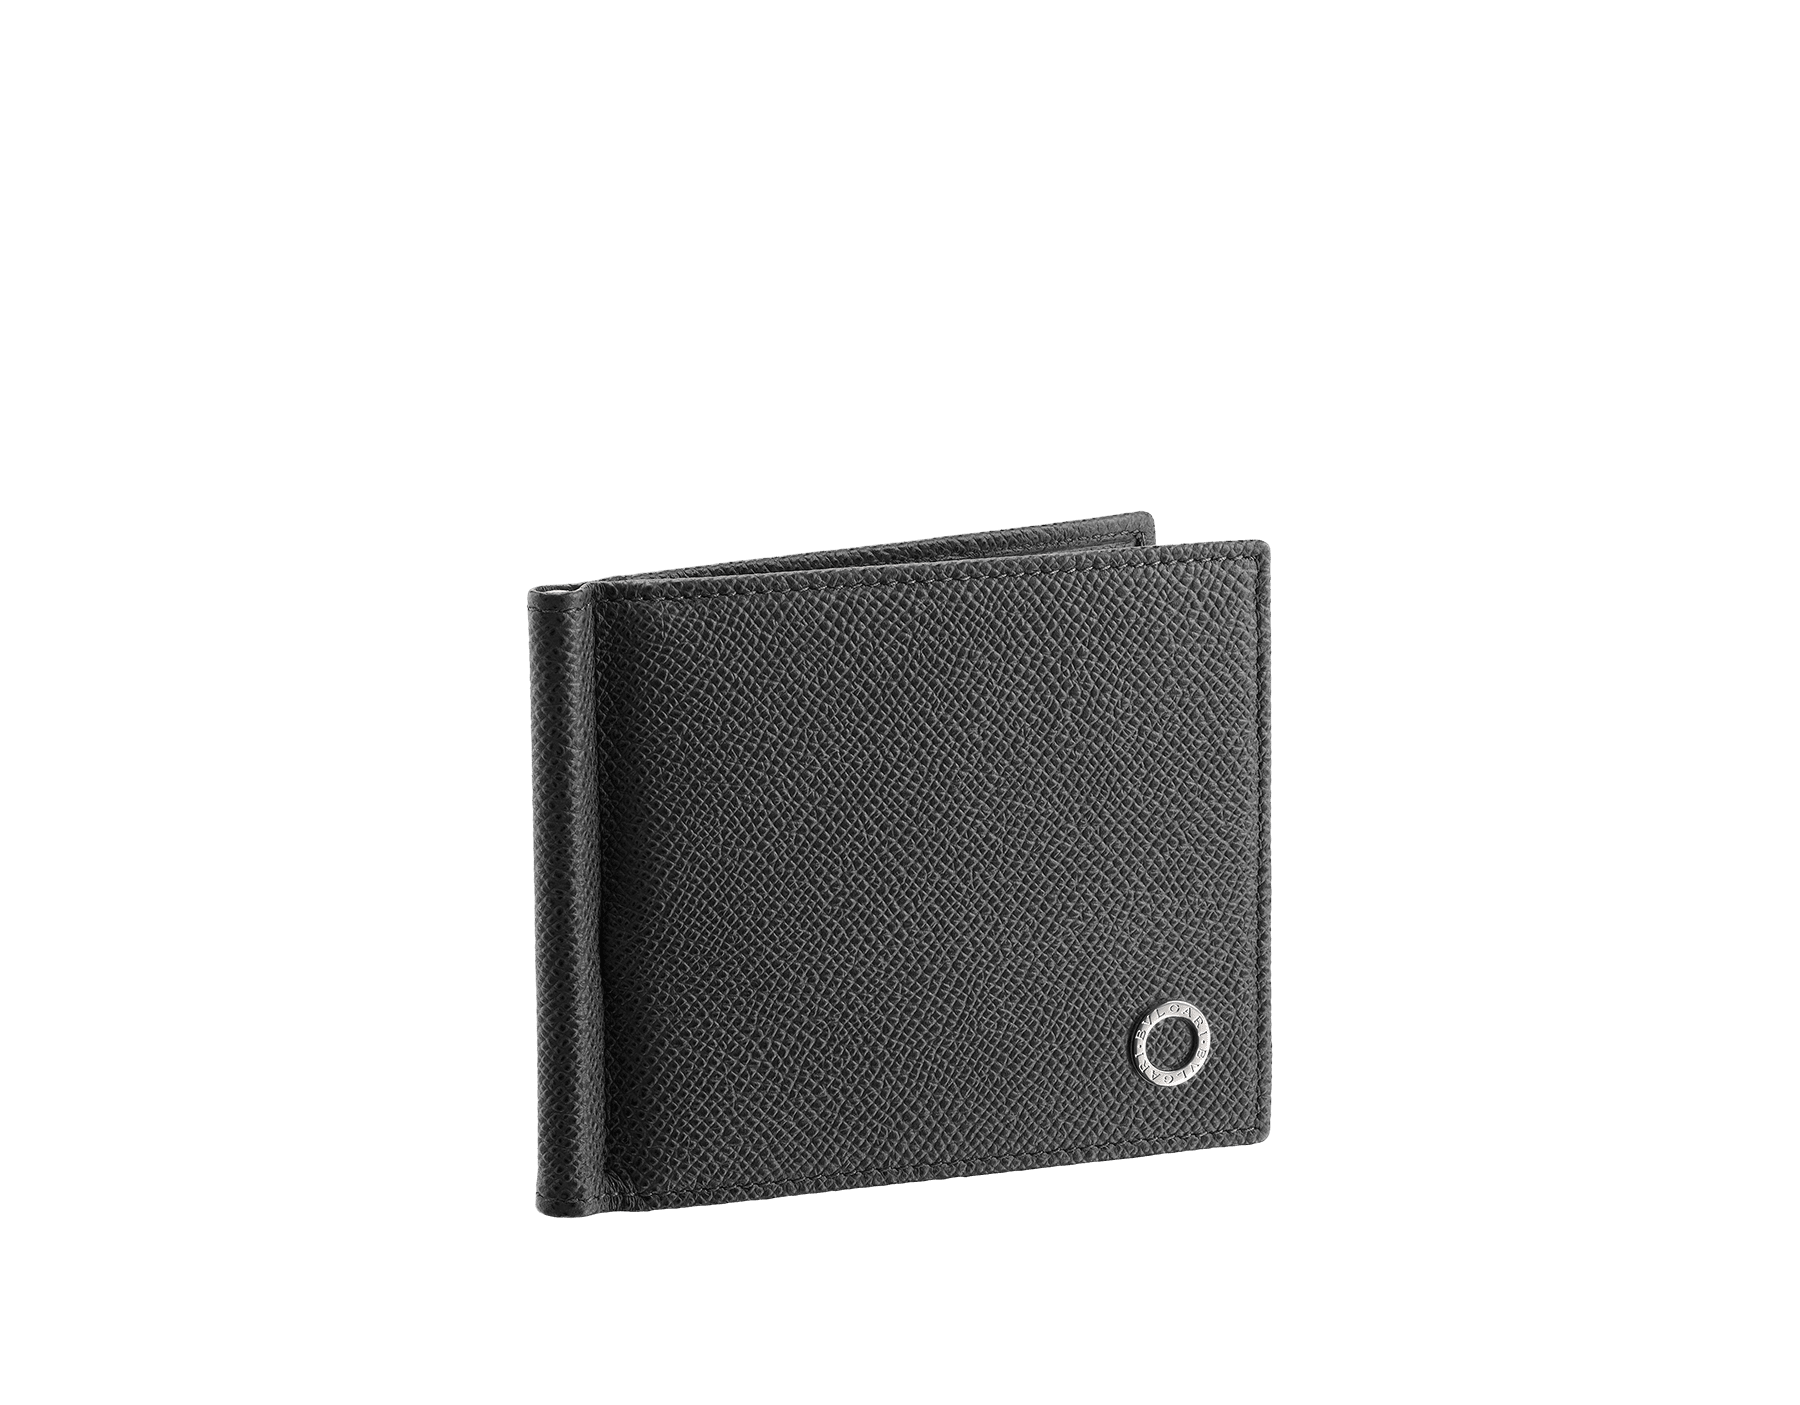 Wallet hipster for men in black grain calf leather with bill clip. Brass palladium plated hardware featuring the BVLGARI BVLGARI motif. 285275 image 1